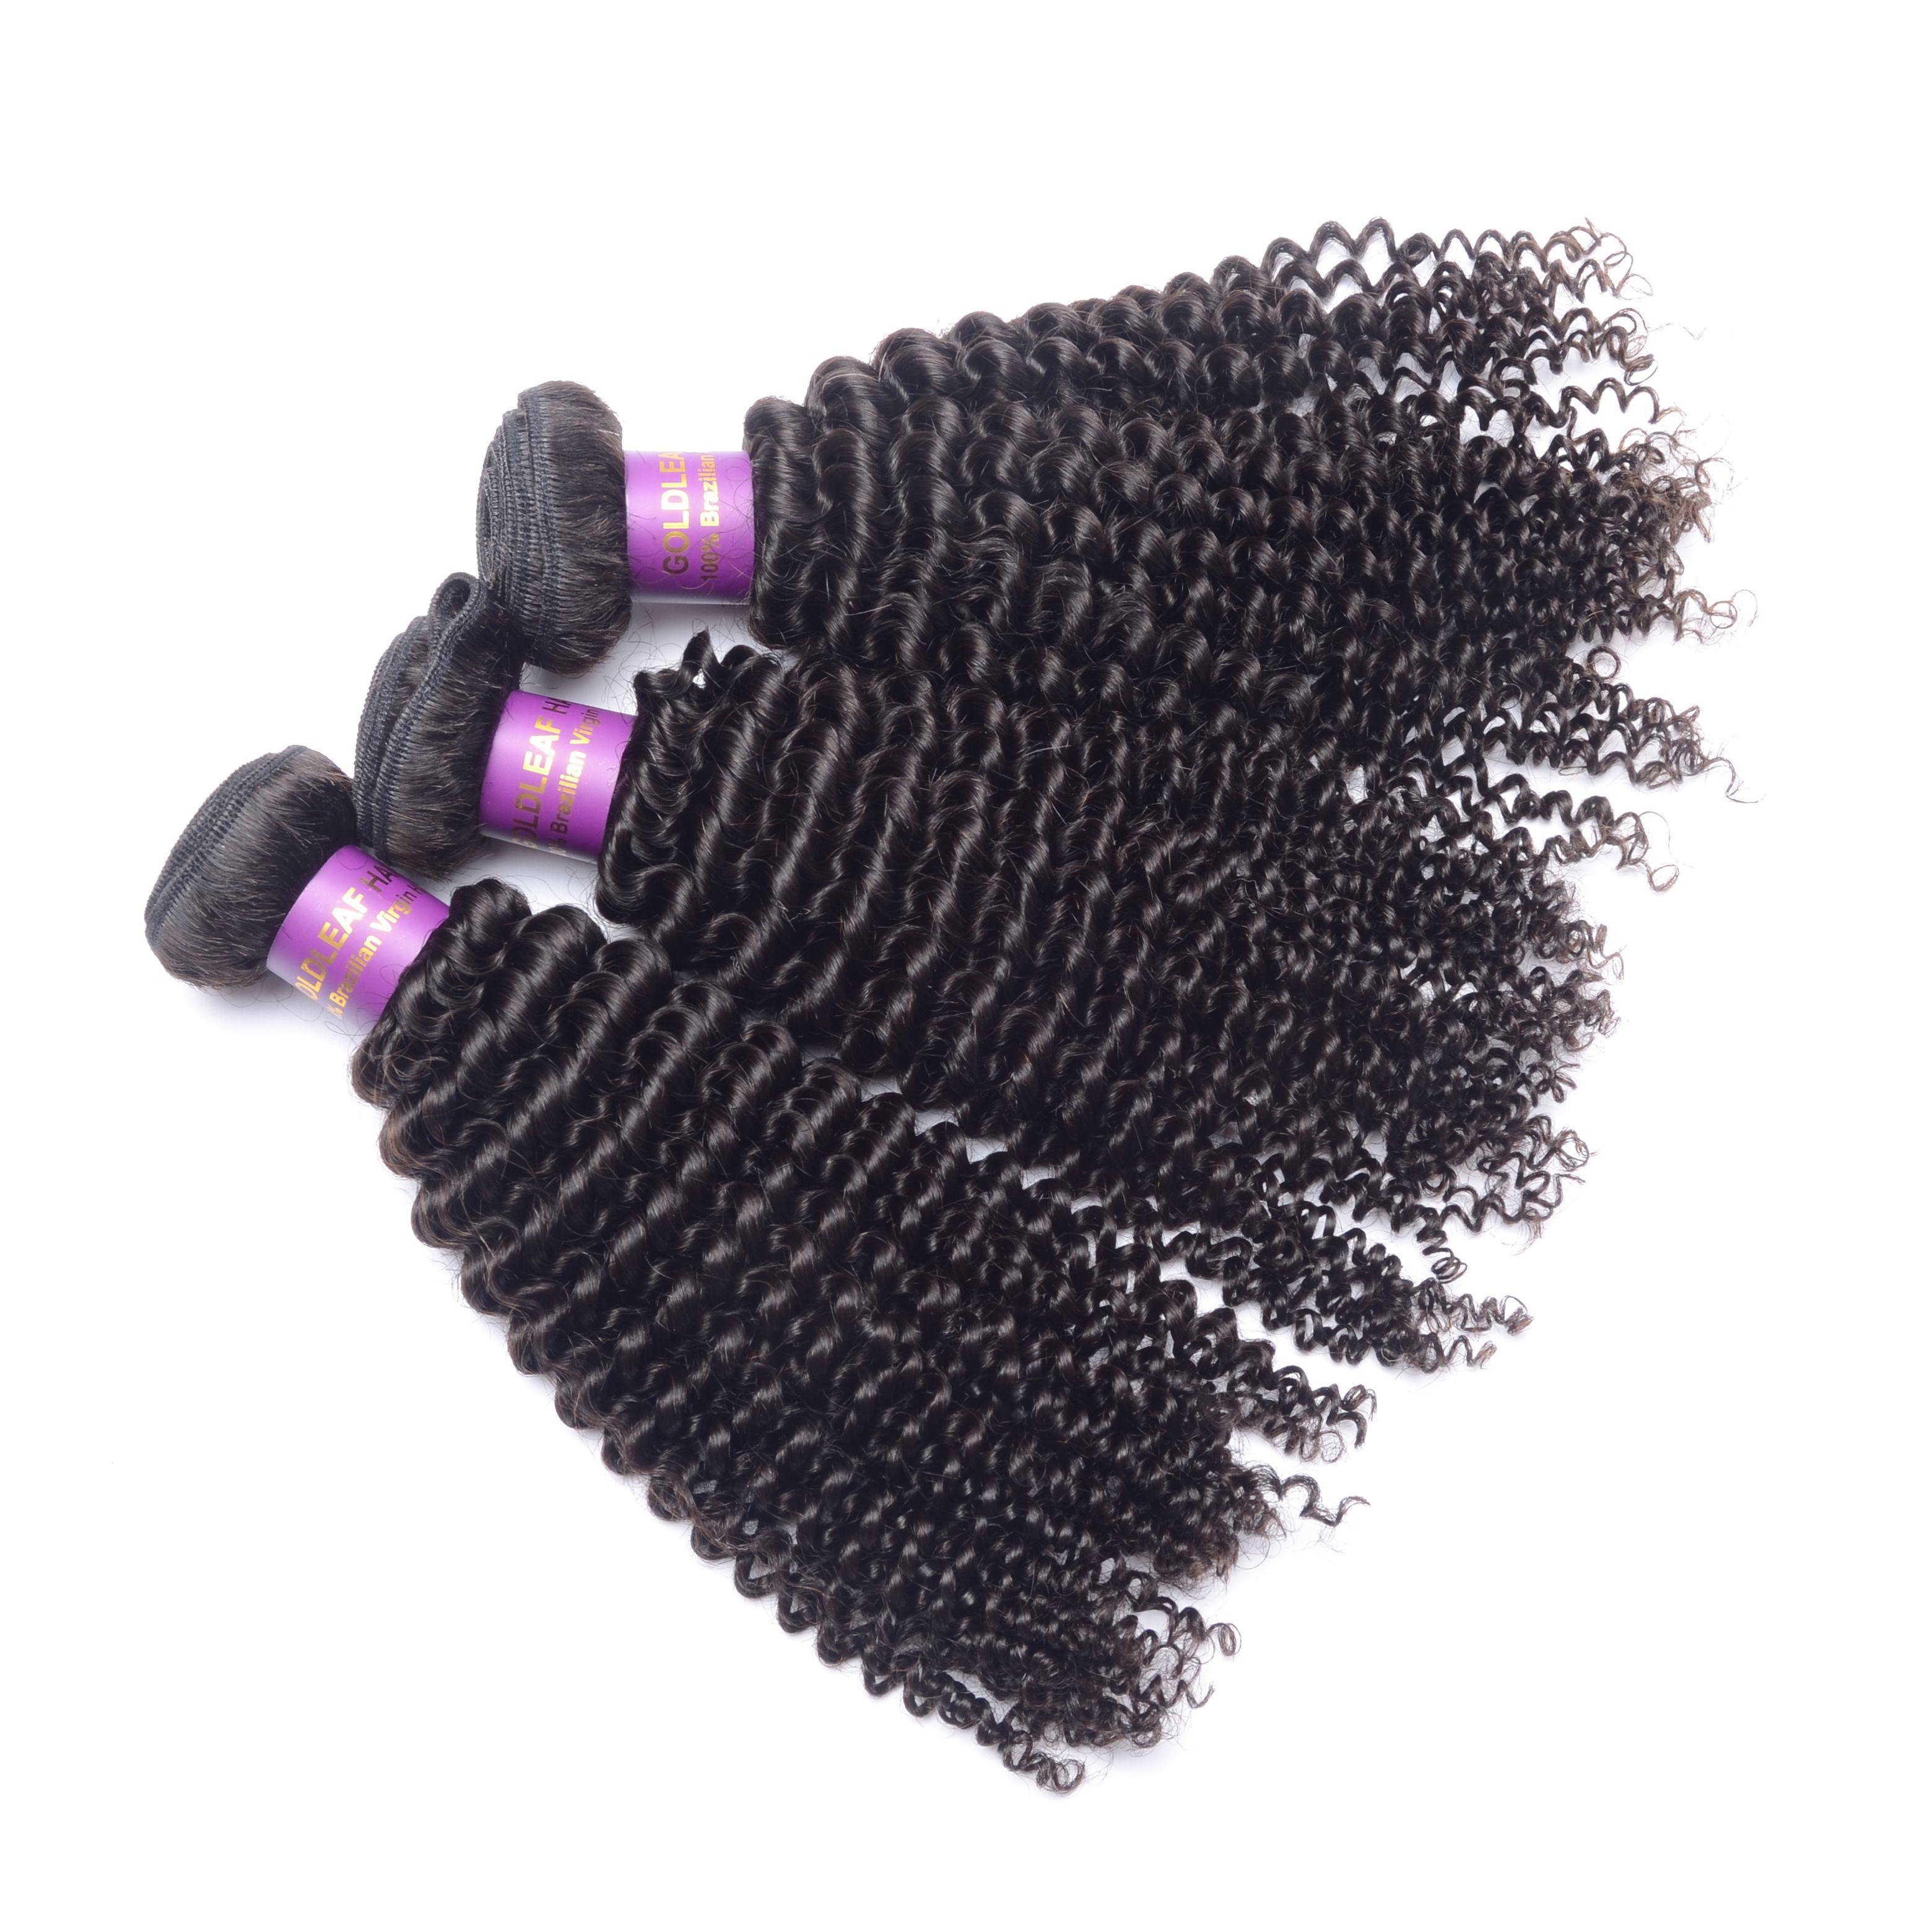 100 Human Hair Extension Kinky Curly From Hair Manufacturer Of